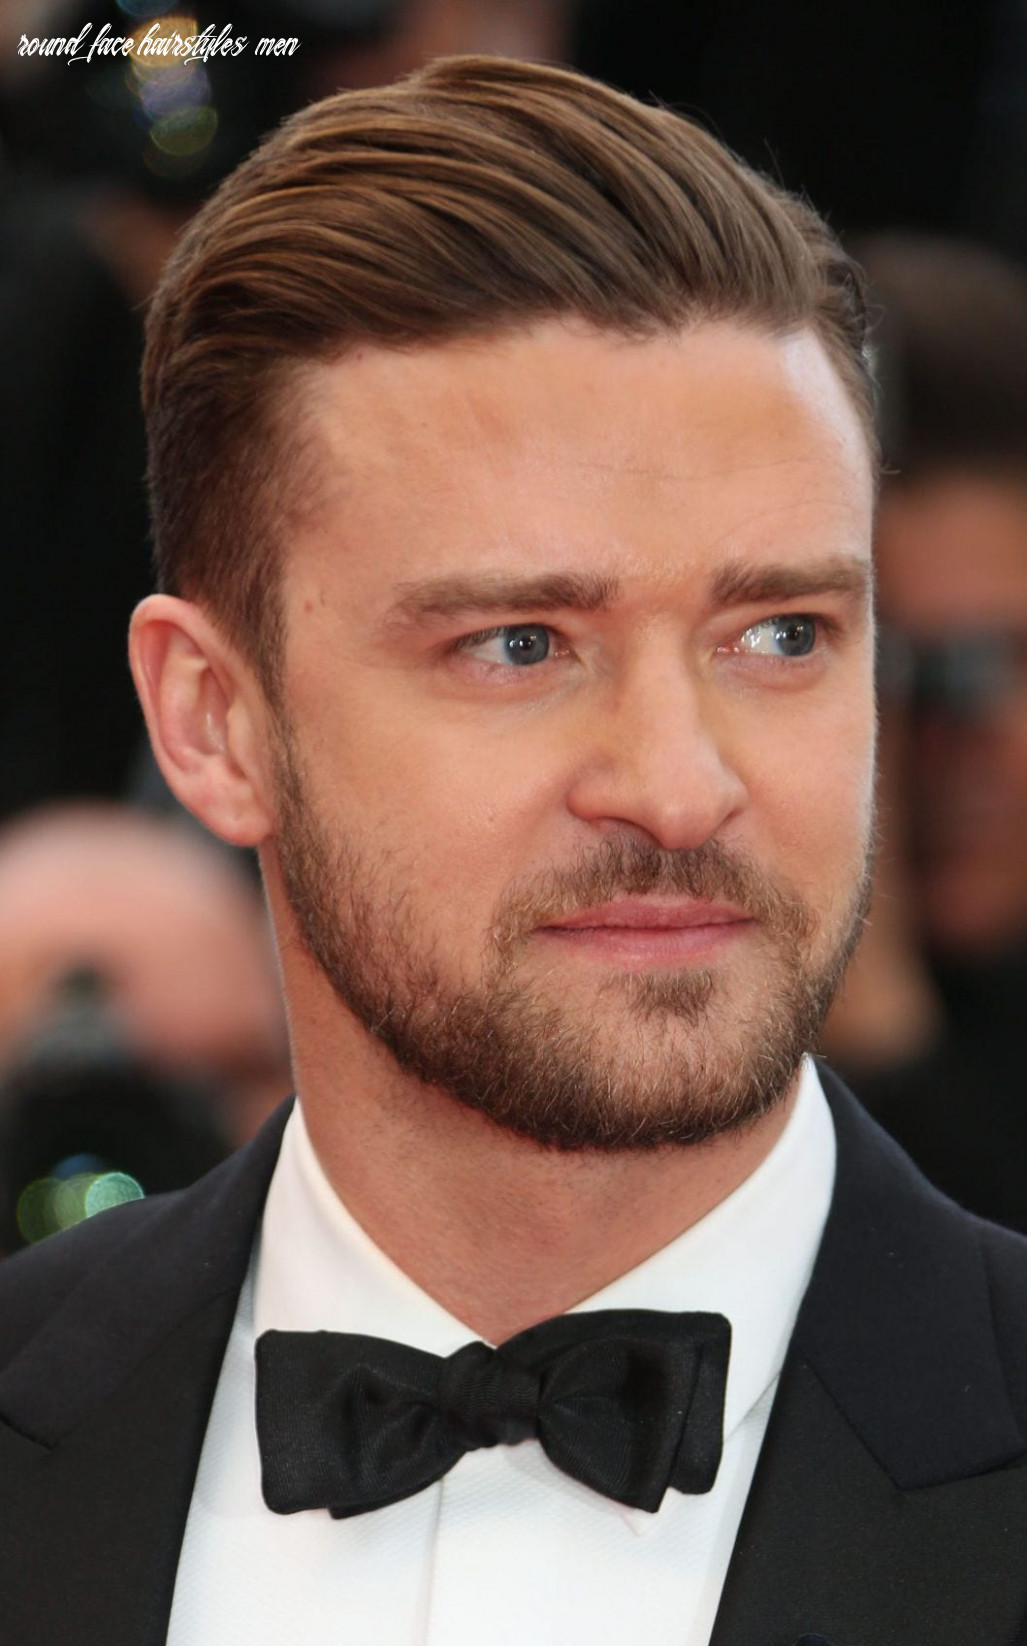 8+ Selected Haircuts for Guys With Round Faces